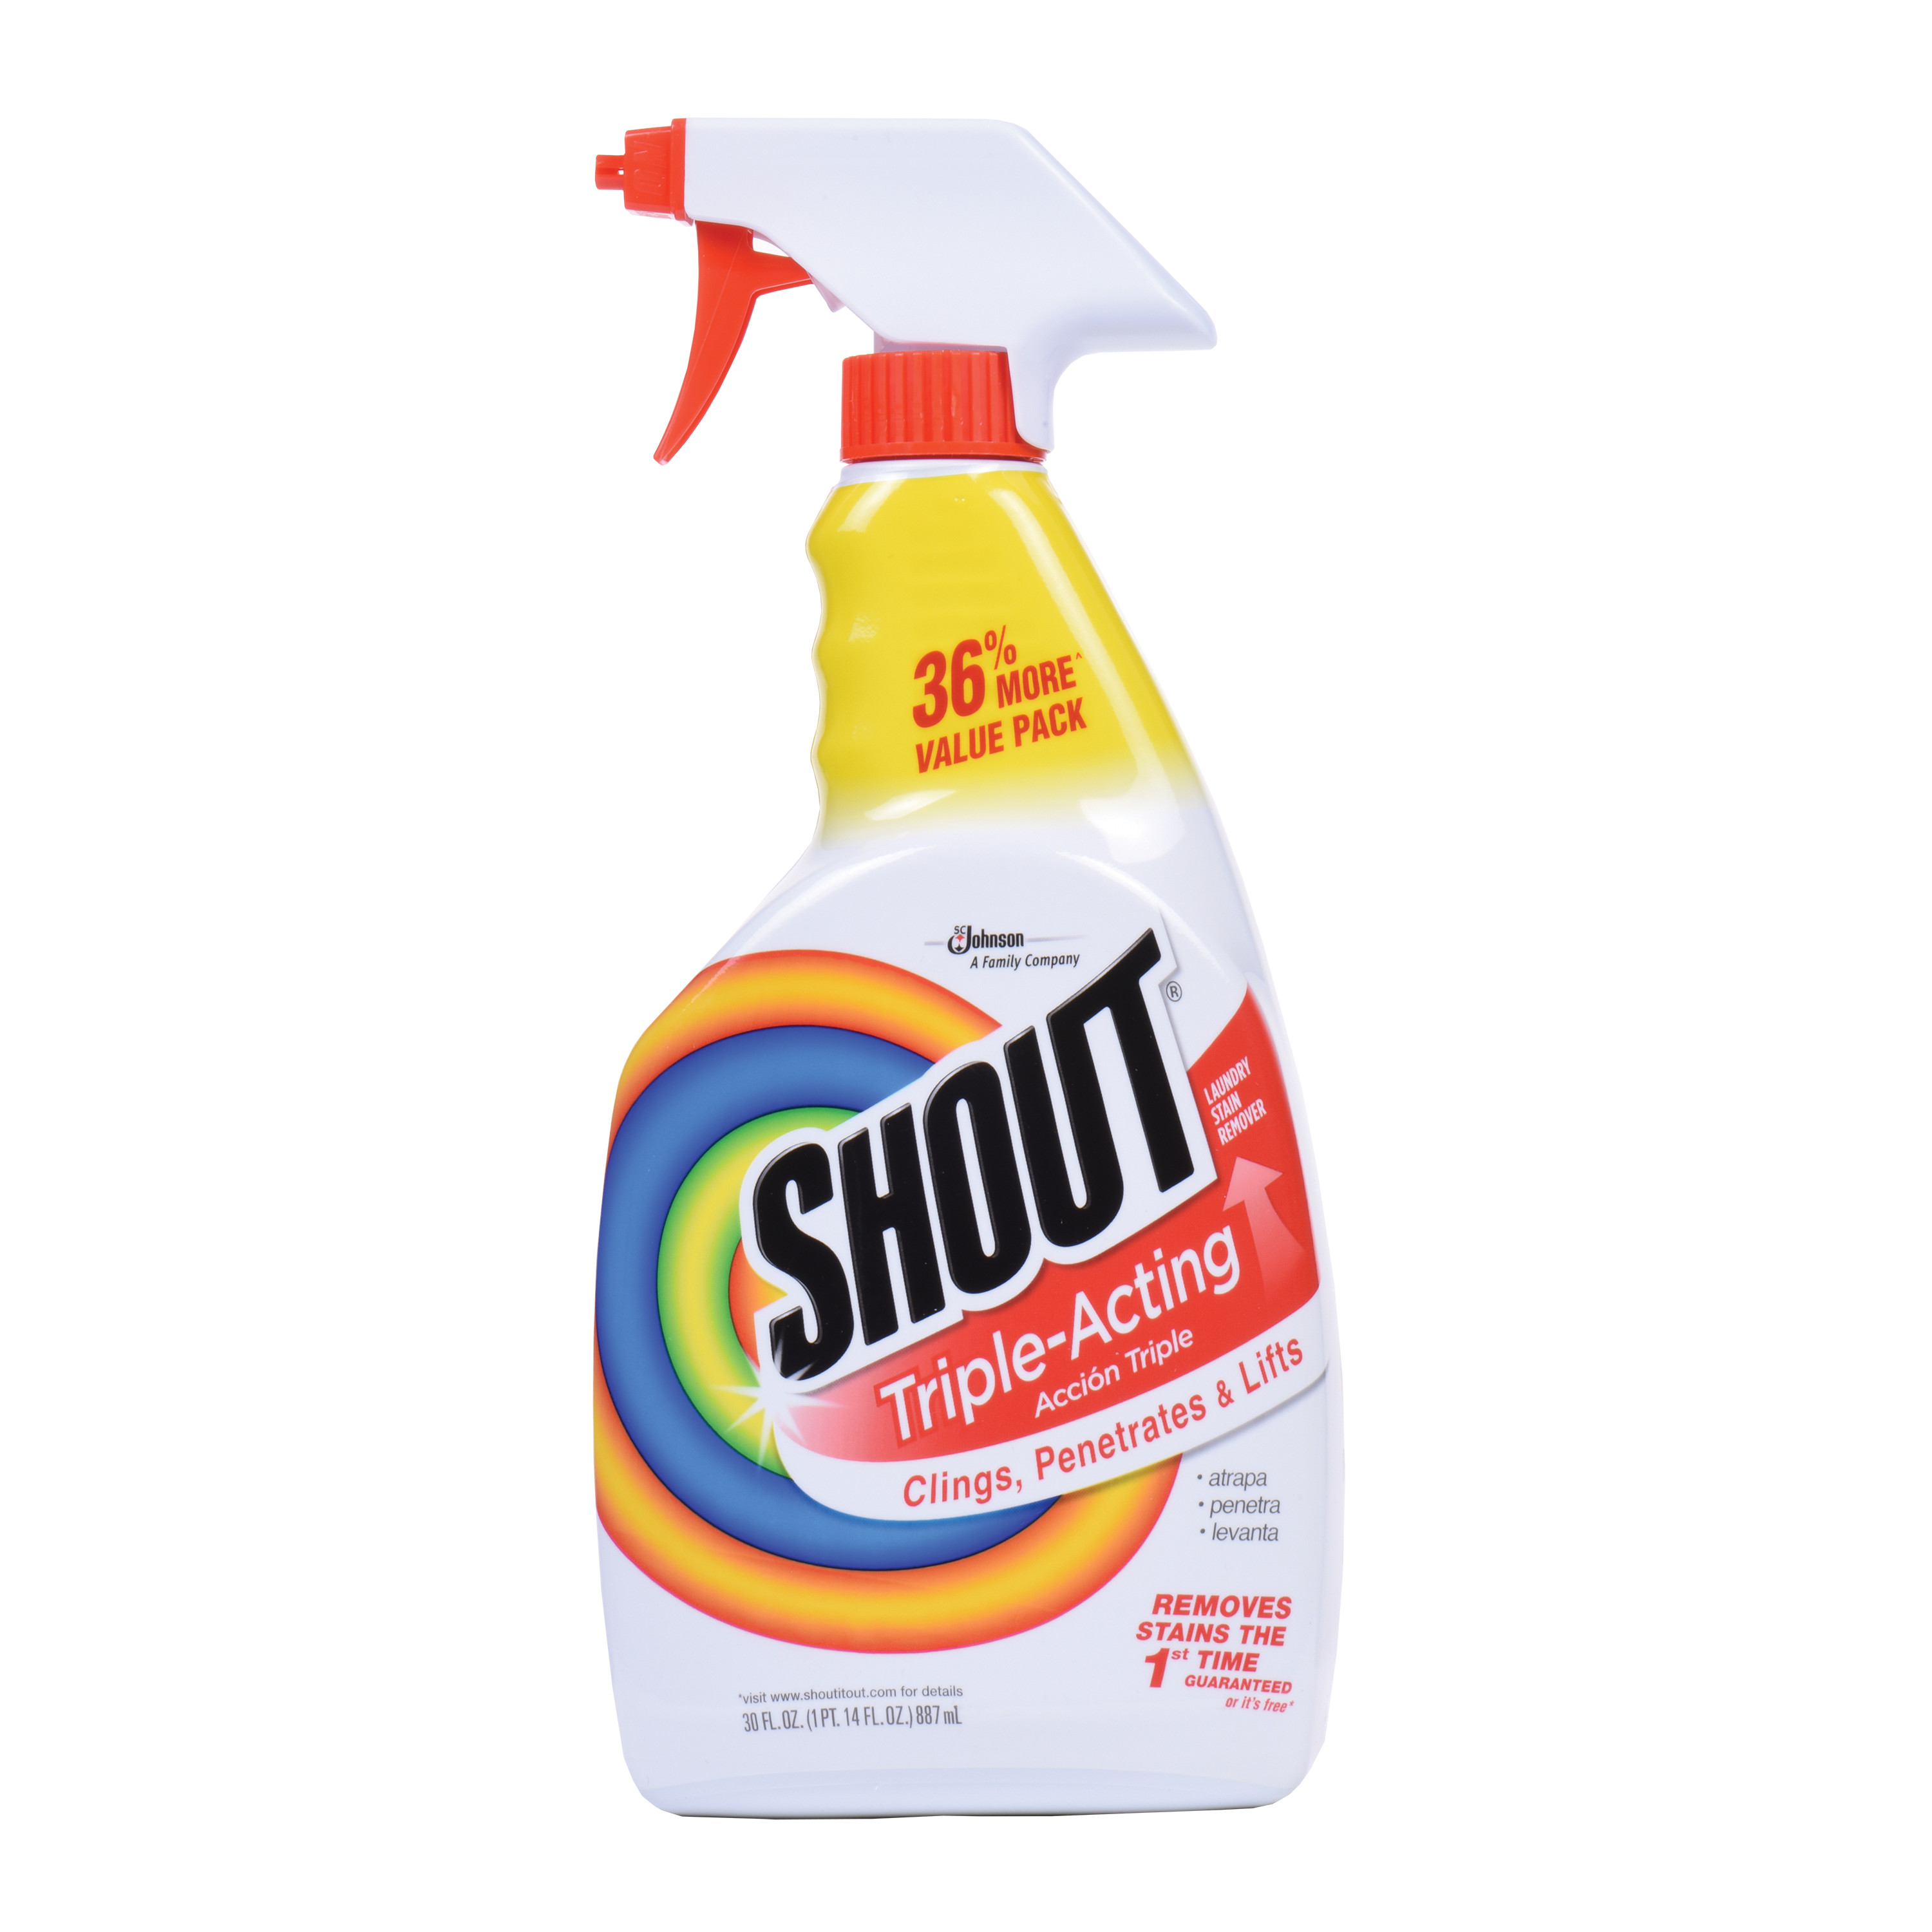 Shout Triple-Acting Stain Remover Spray 30 Fluid. Ounces.